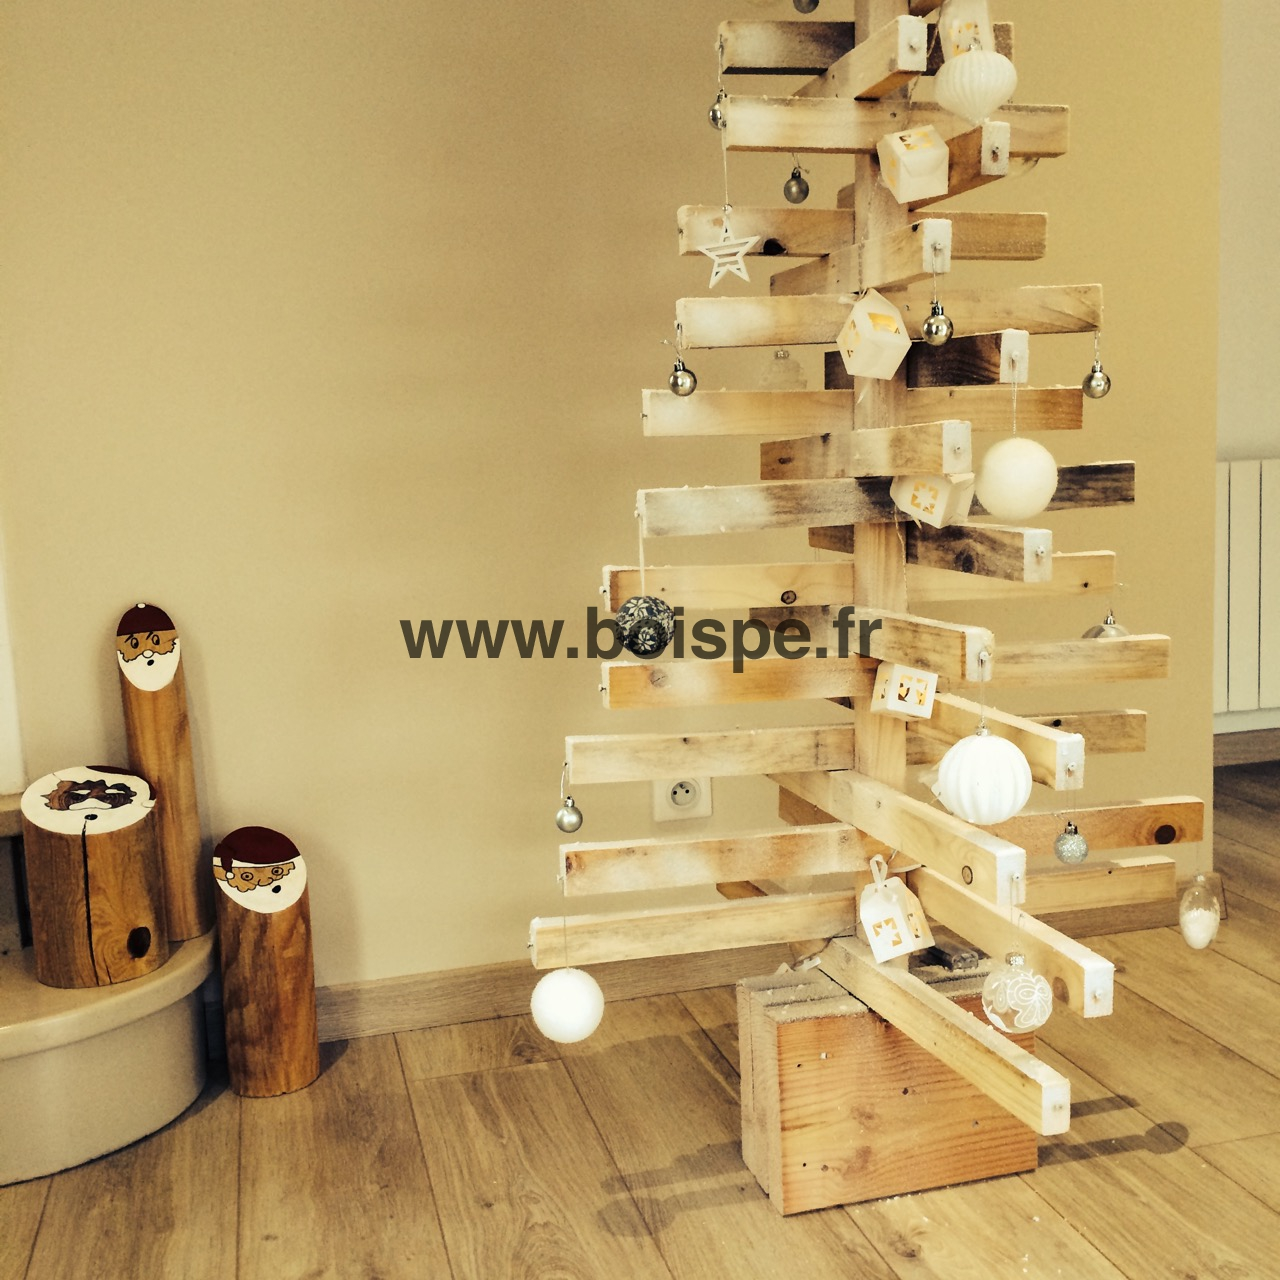 fabriquer un sapin de noel en bois. Black Bedroom Furniture Sets. Home Design Ideas